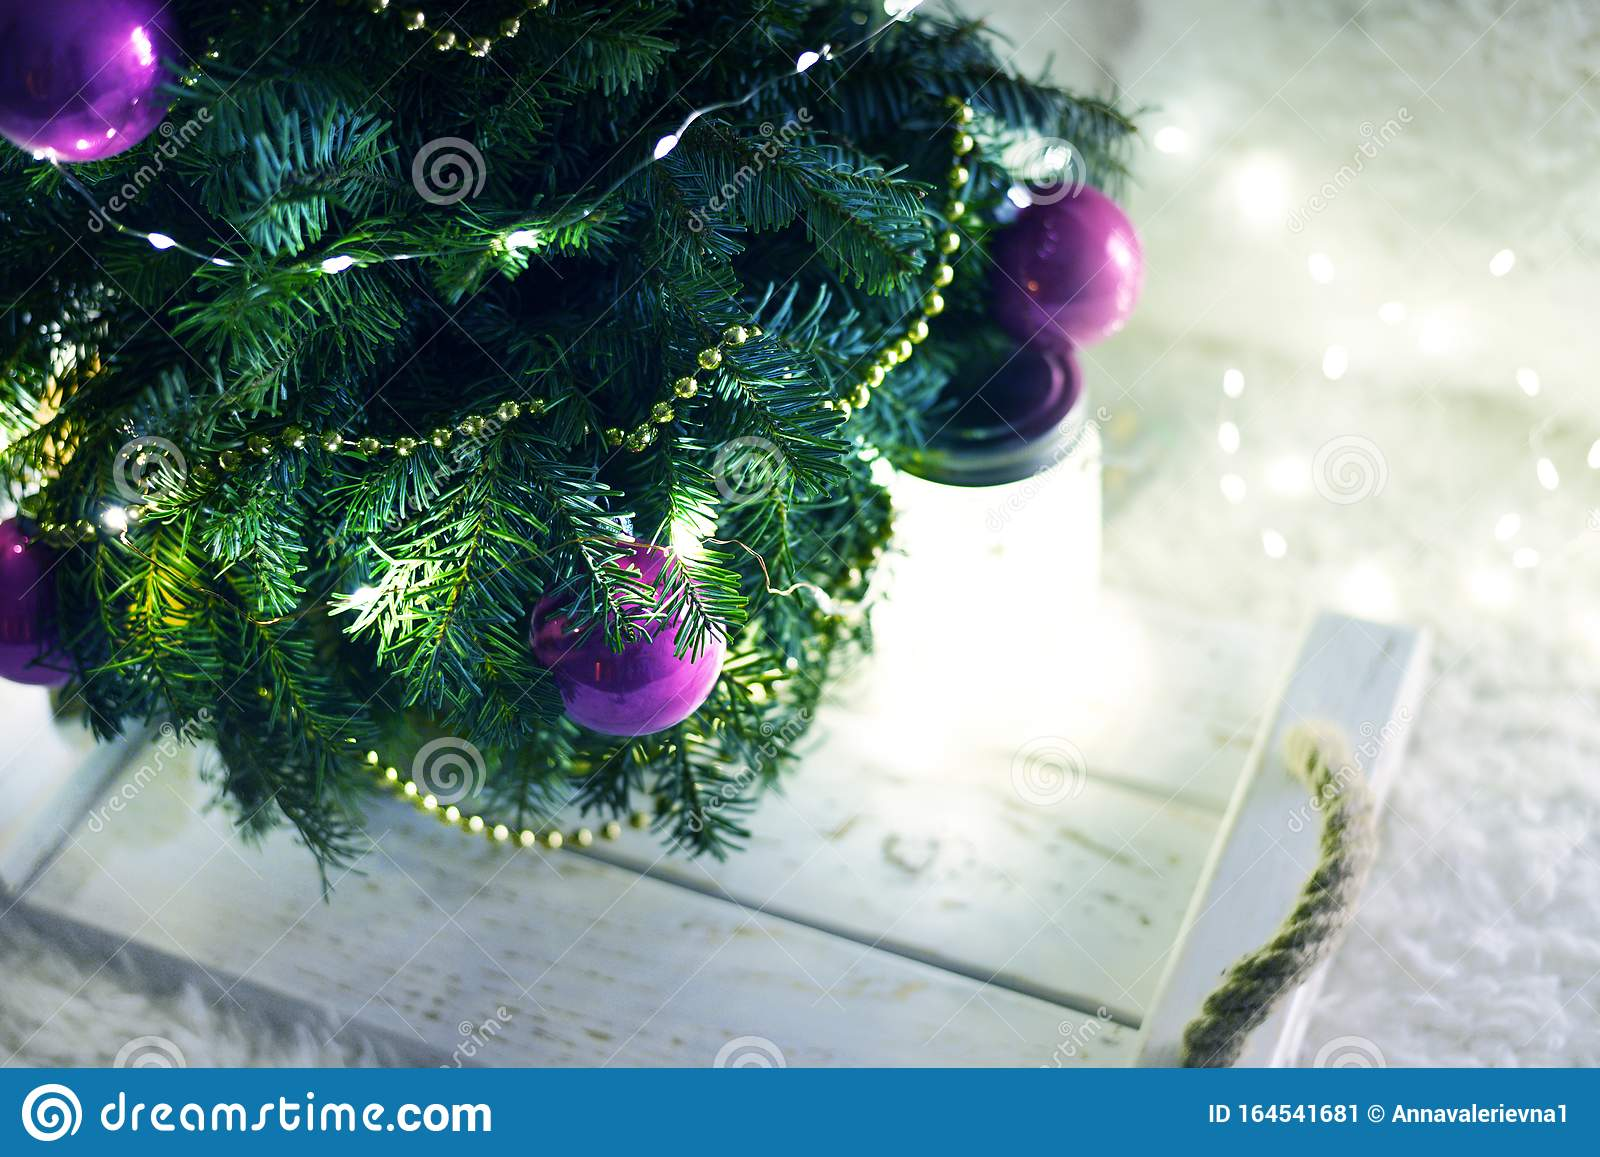 New Year`s Christmas scenery. Christmas tree branches with toys